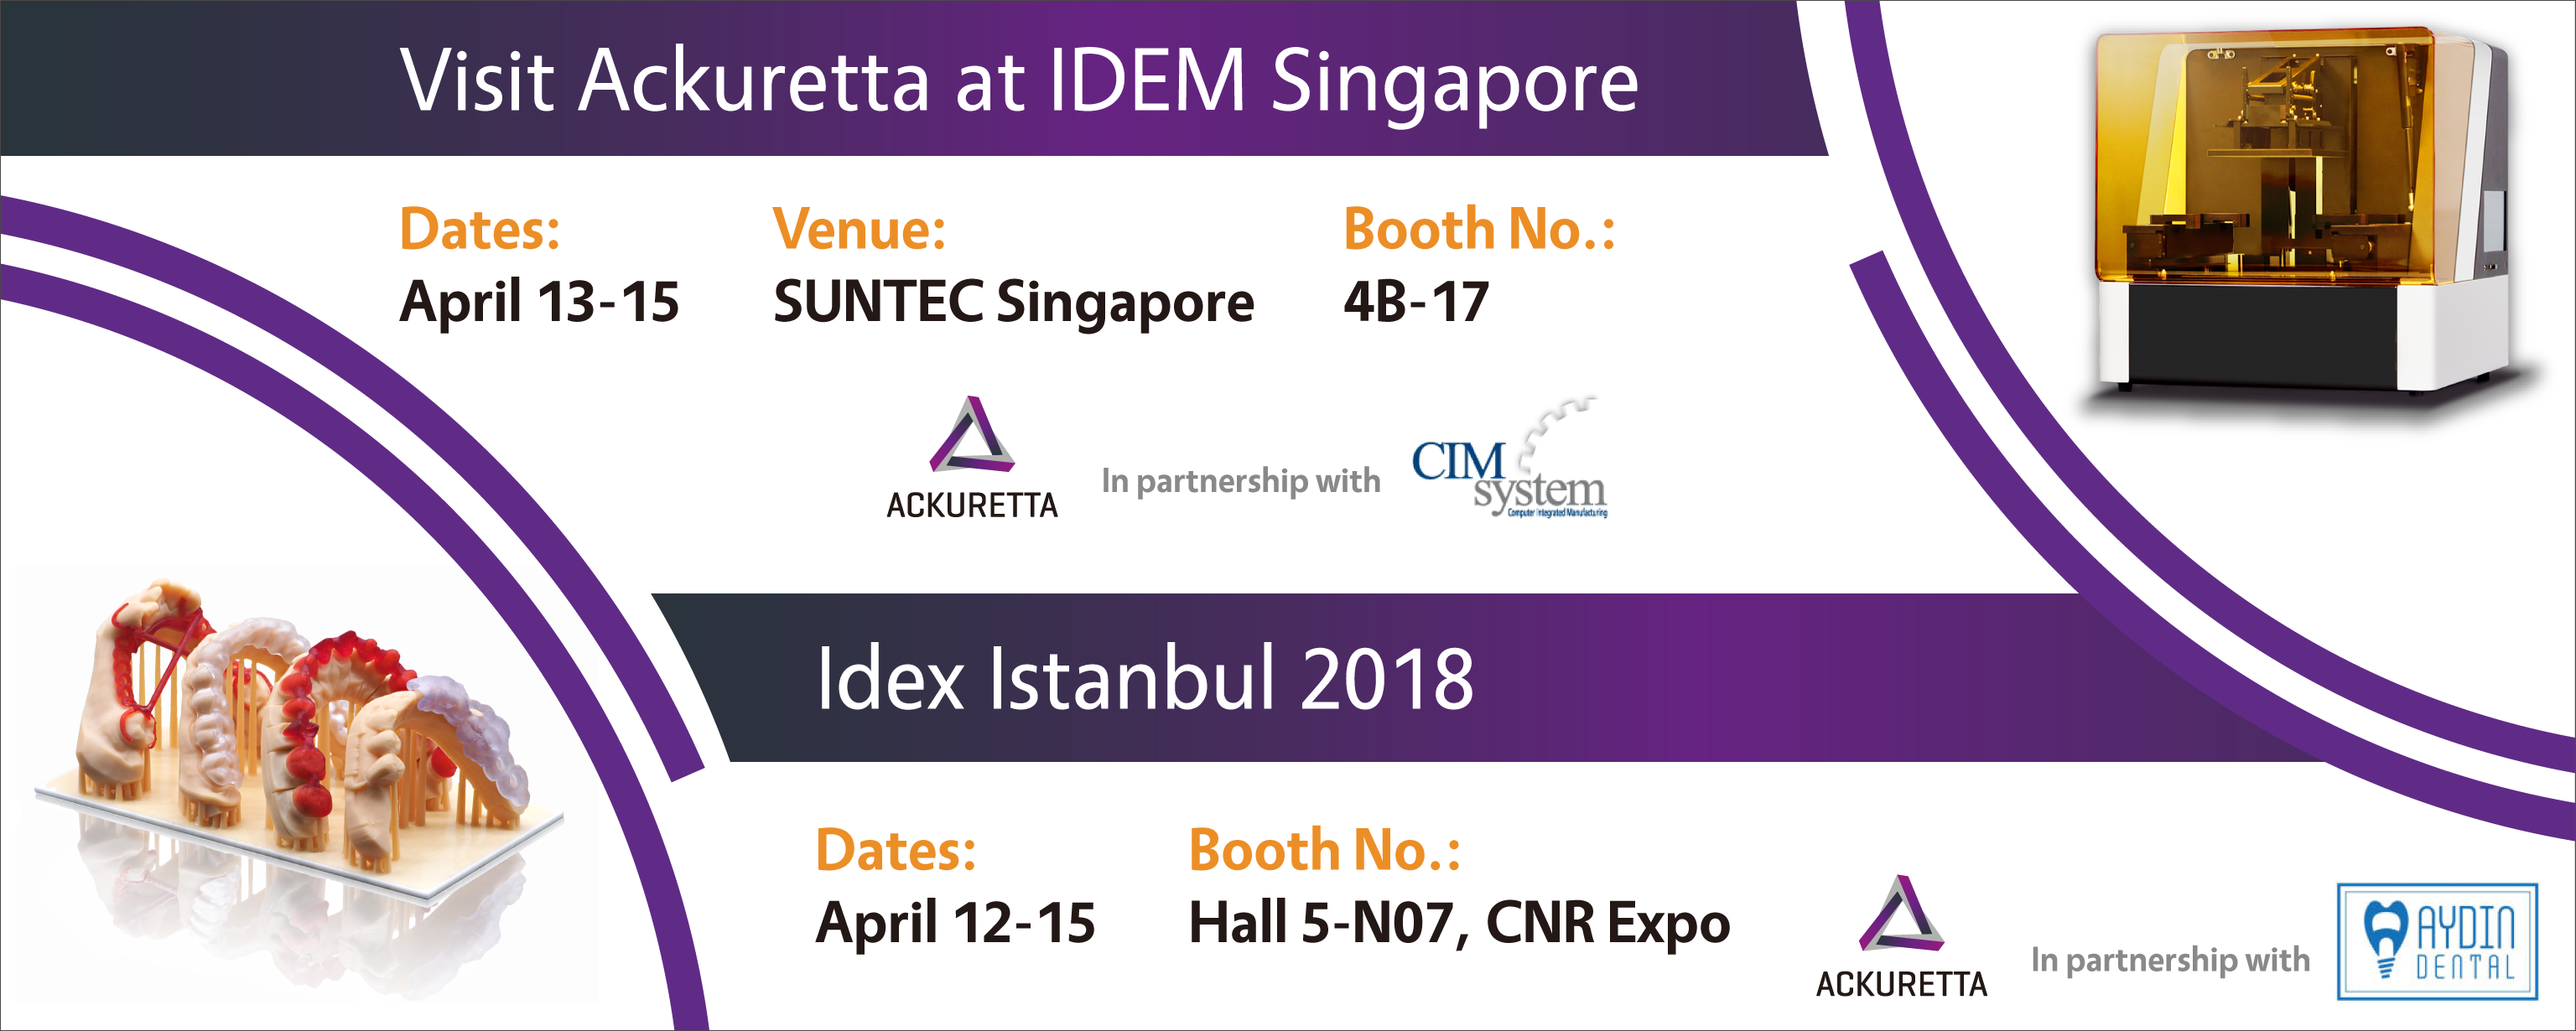 Ackuretta at IDEM and Idex